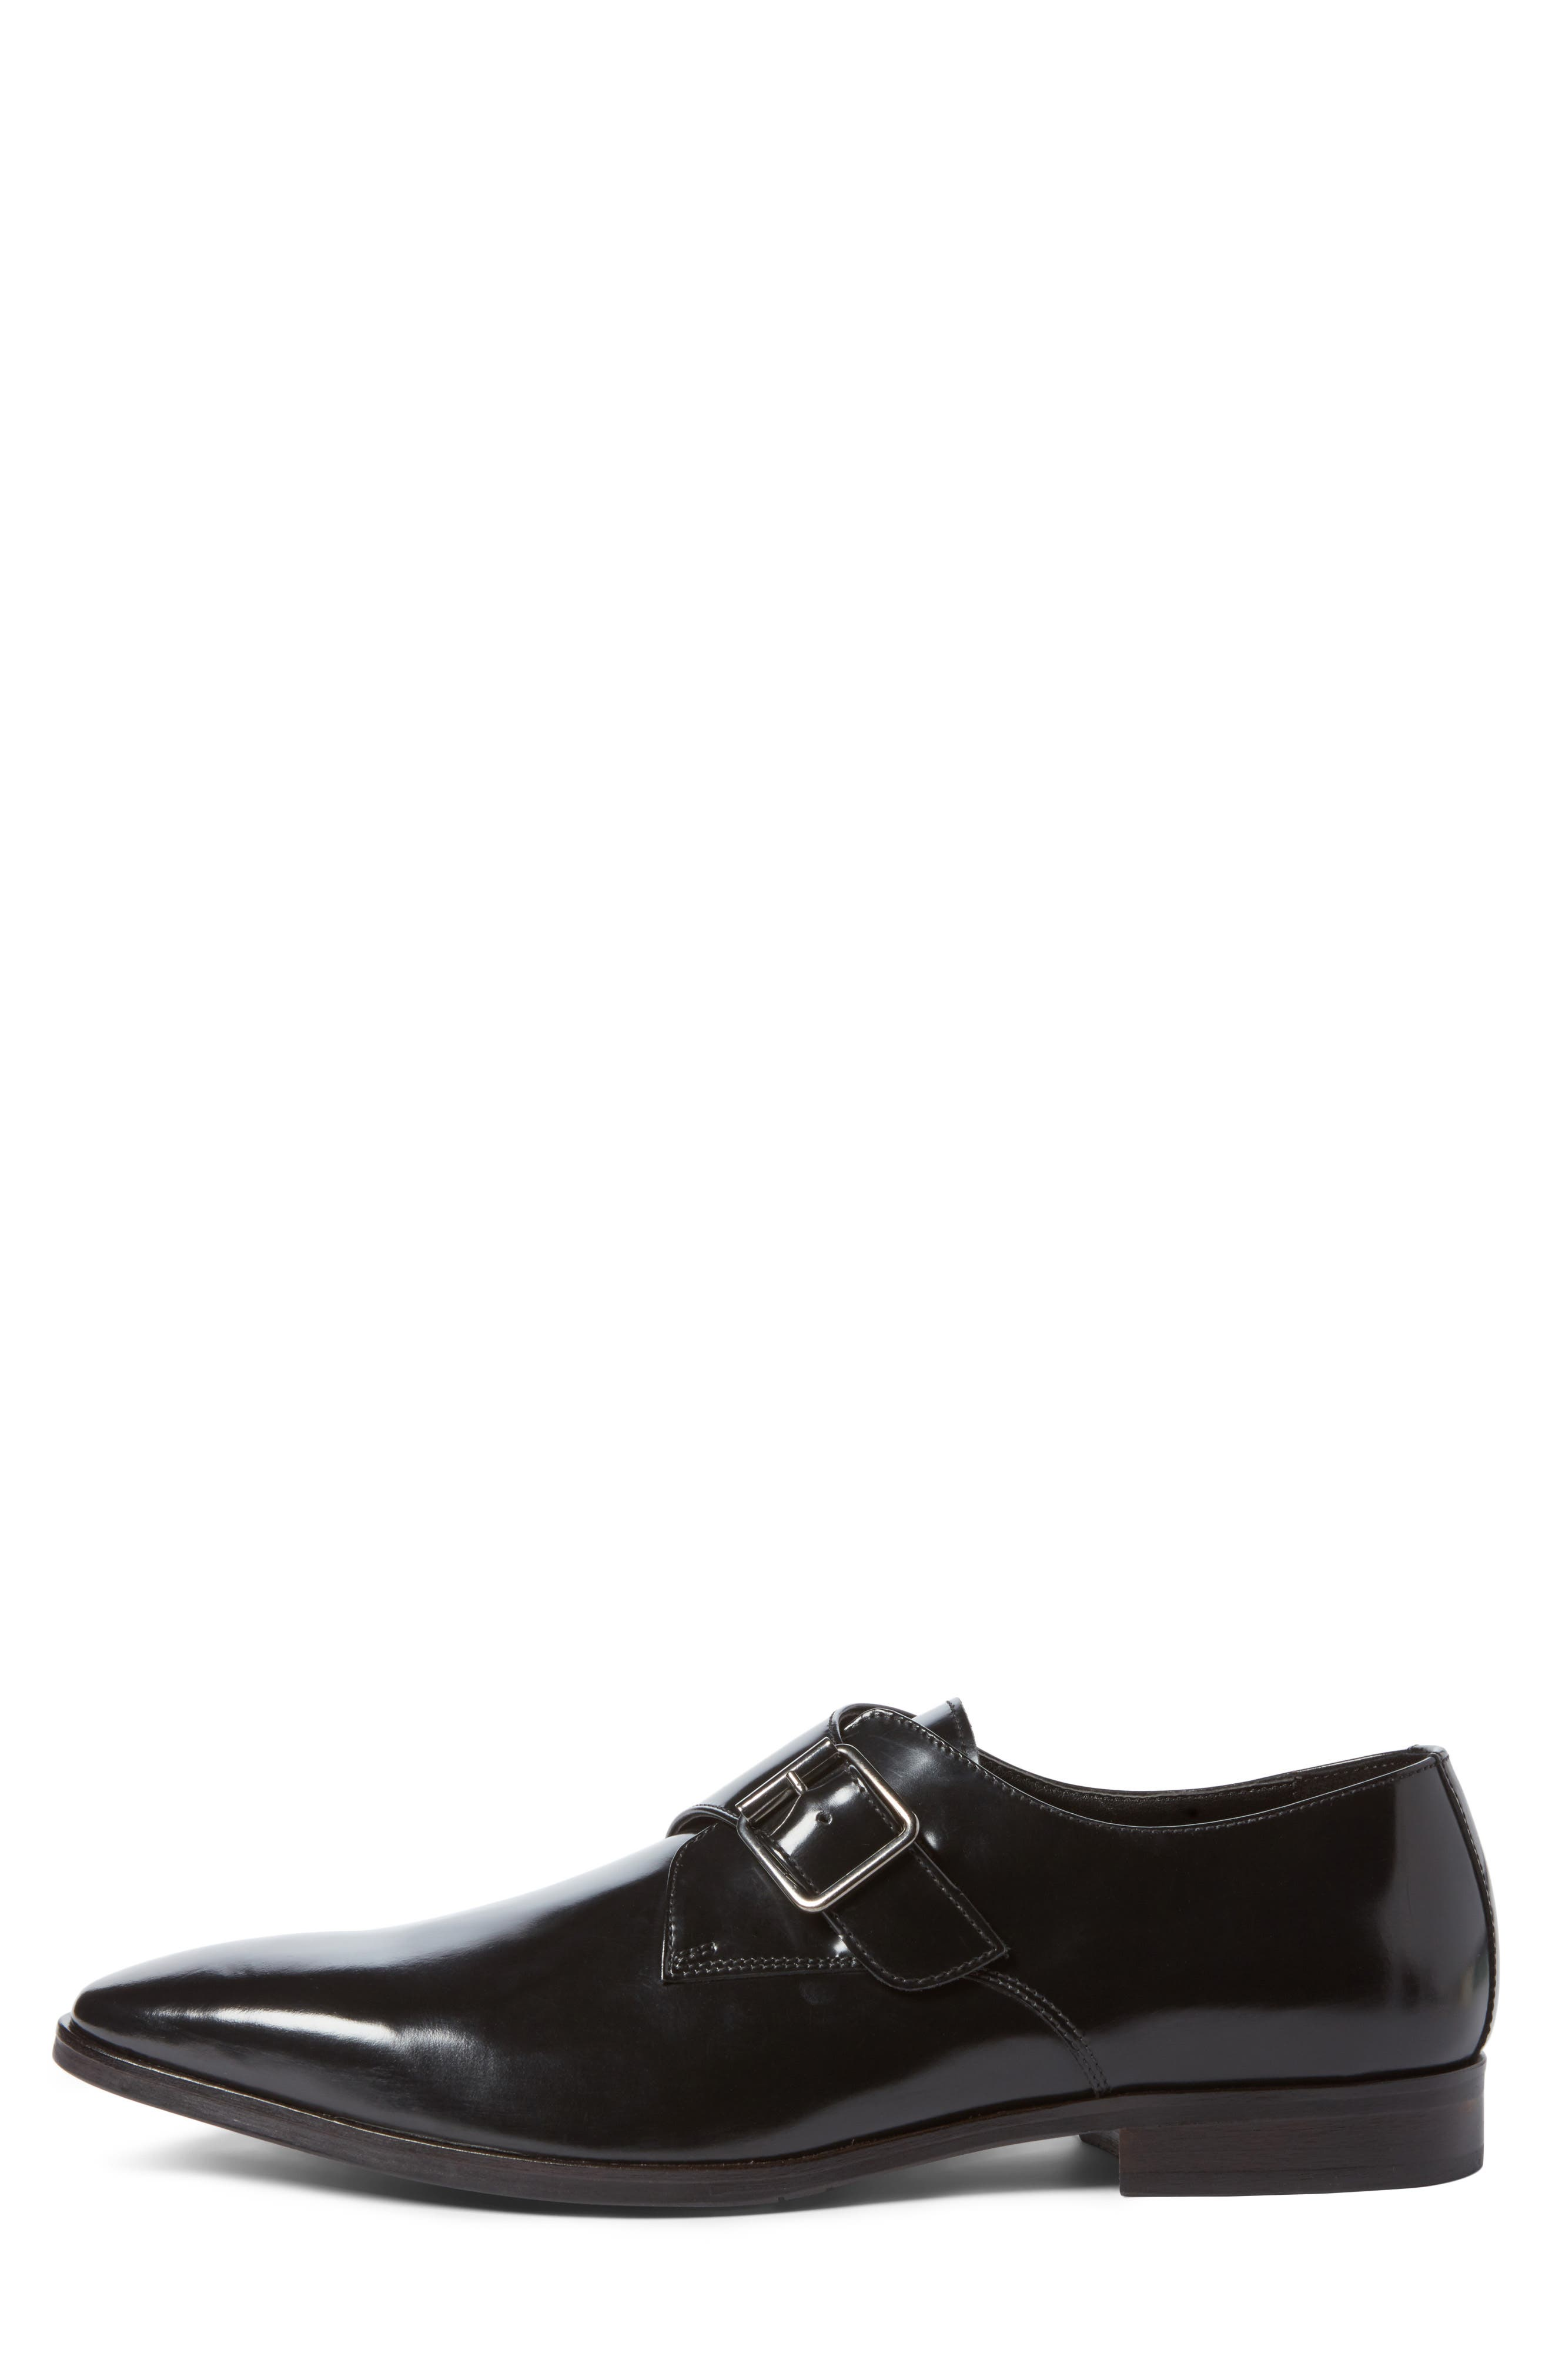 Webster Single Strap Monk Shoe,                             Alternate thumbnail 3, color,                             001